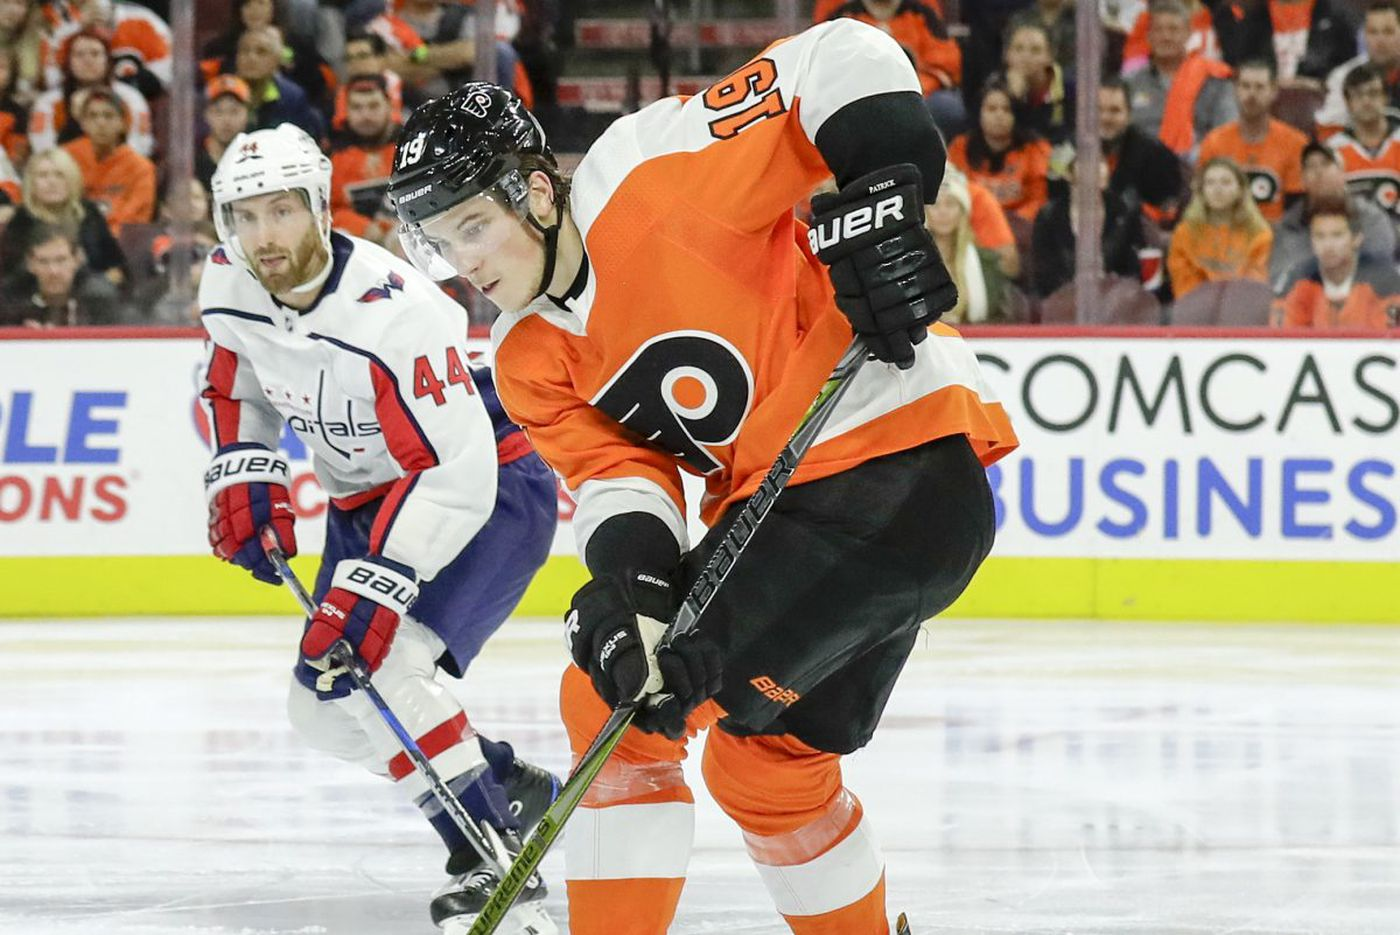 Flyers rookie Nolan Patrick continues to make progress; Andrew MacDonald will skate Wednesday